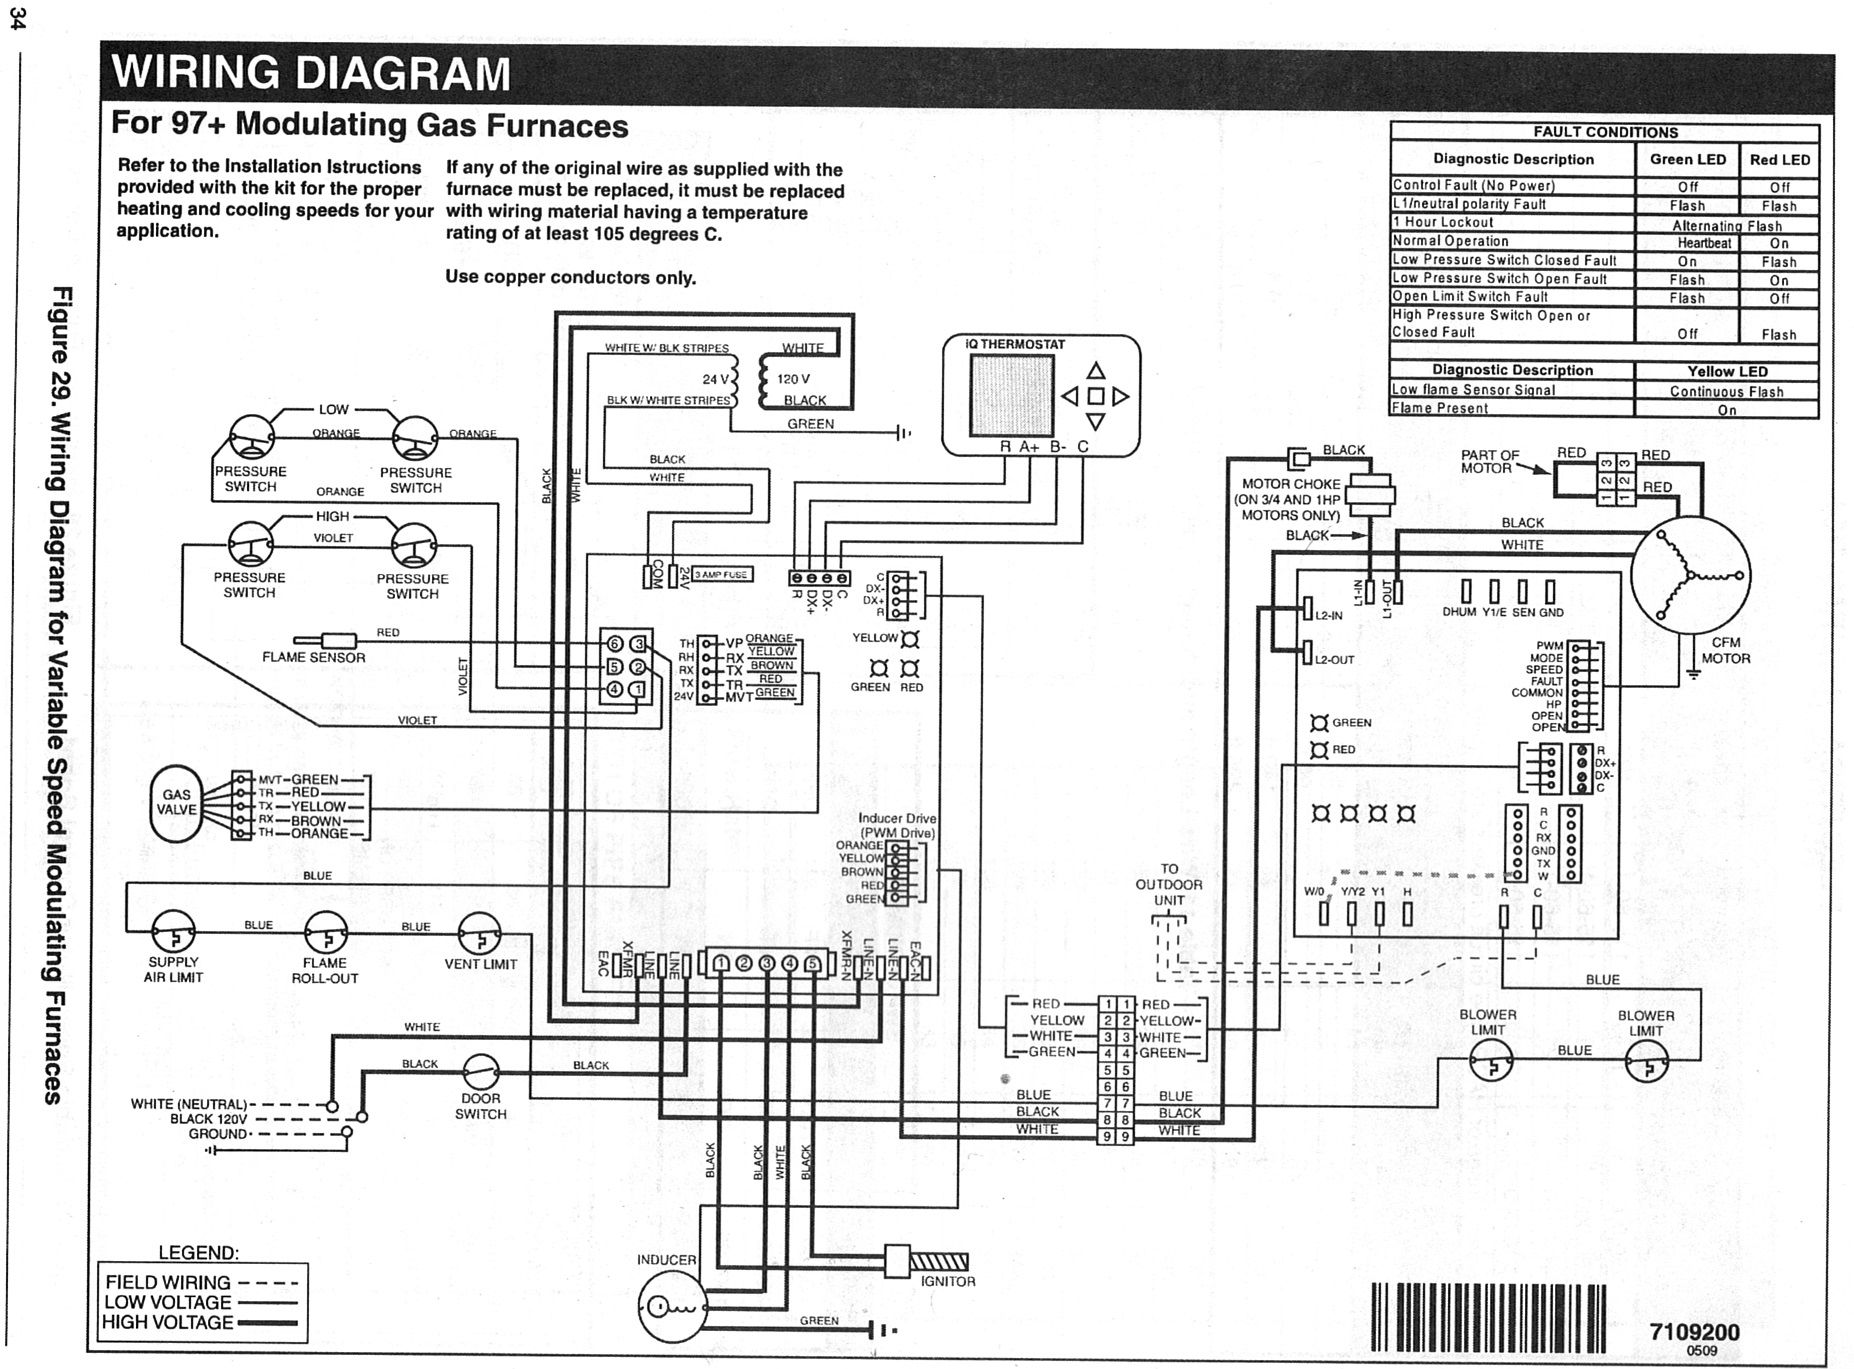 maytag furnace wiring diagram auto wiring diagram today u2022 maytag neptune dryer diagram maytag dryer schematic drawings [ 1854 x 1369 Pixel ]